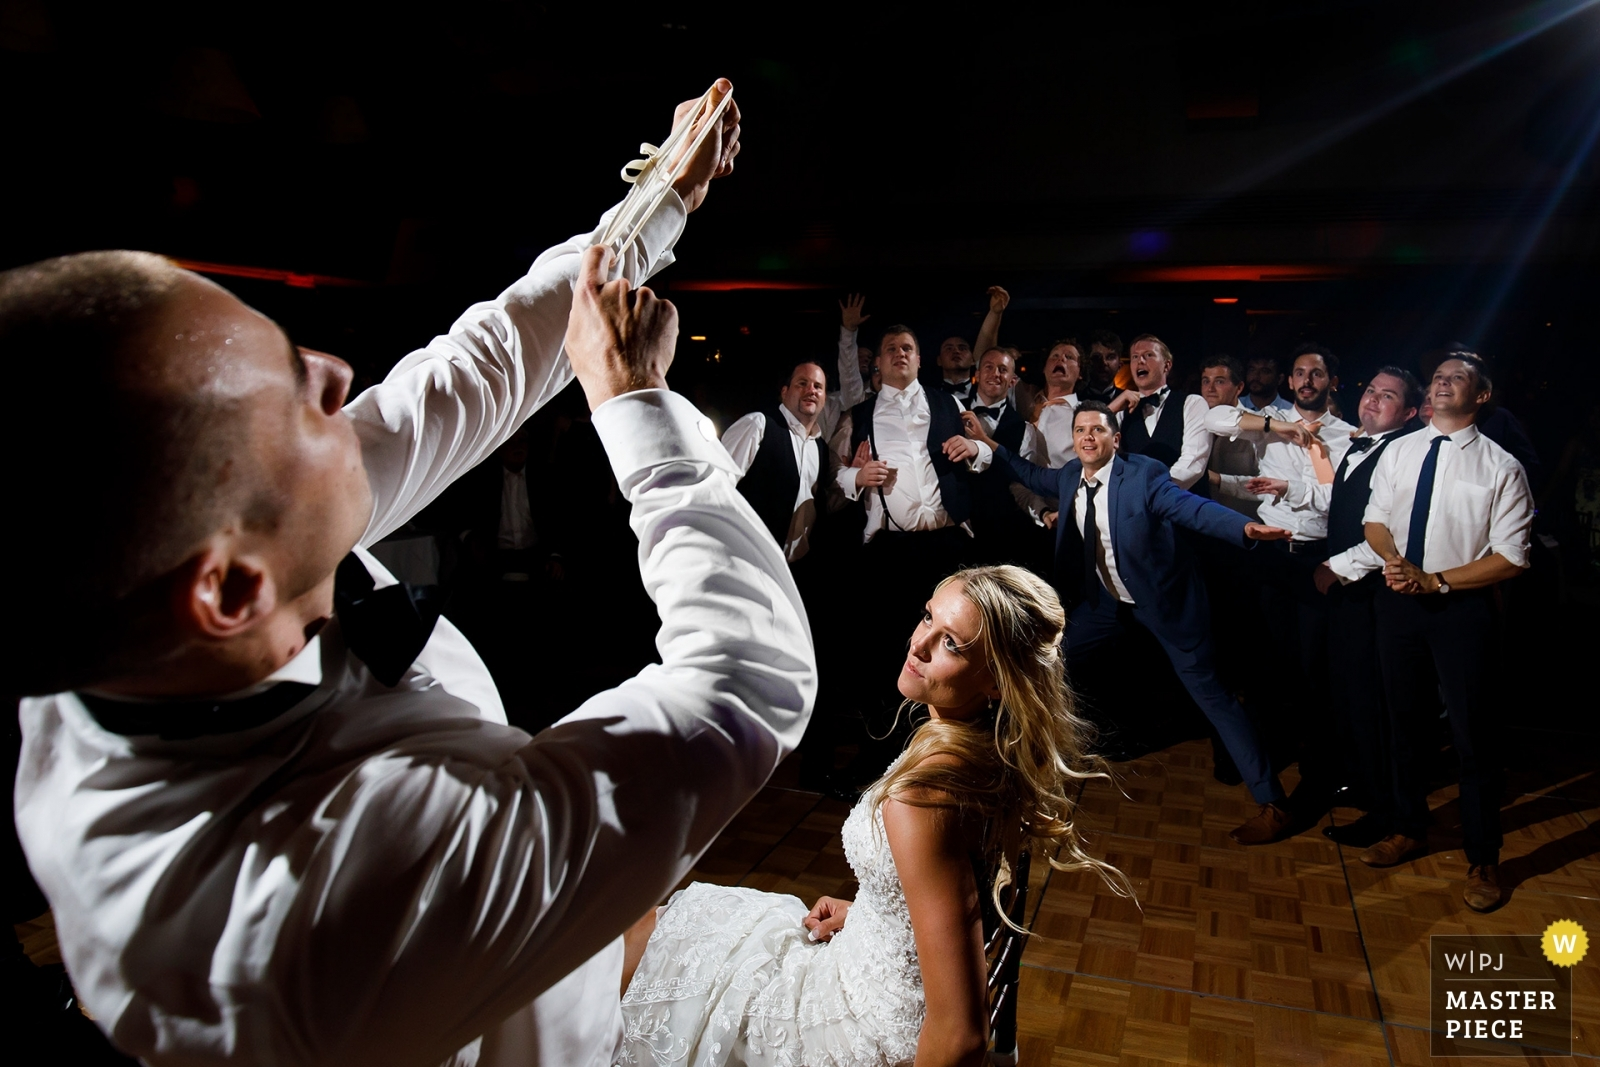 The groom prepares to shoot the garter as single guys jostle for position on the dance floor during a wedding reception at The Broadmoor. - Denver, Colorado Wedding Photography -  | The Broadmoor Hotel, Colorado Springs, Colorado